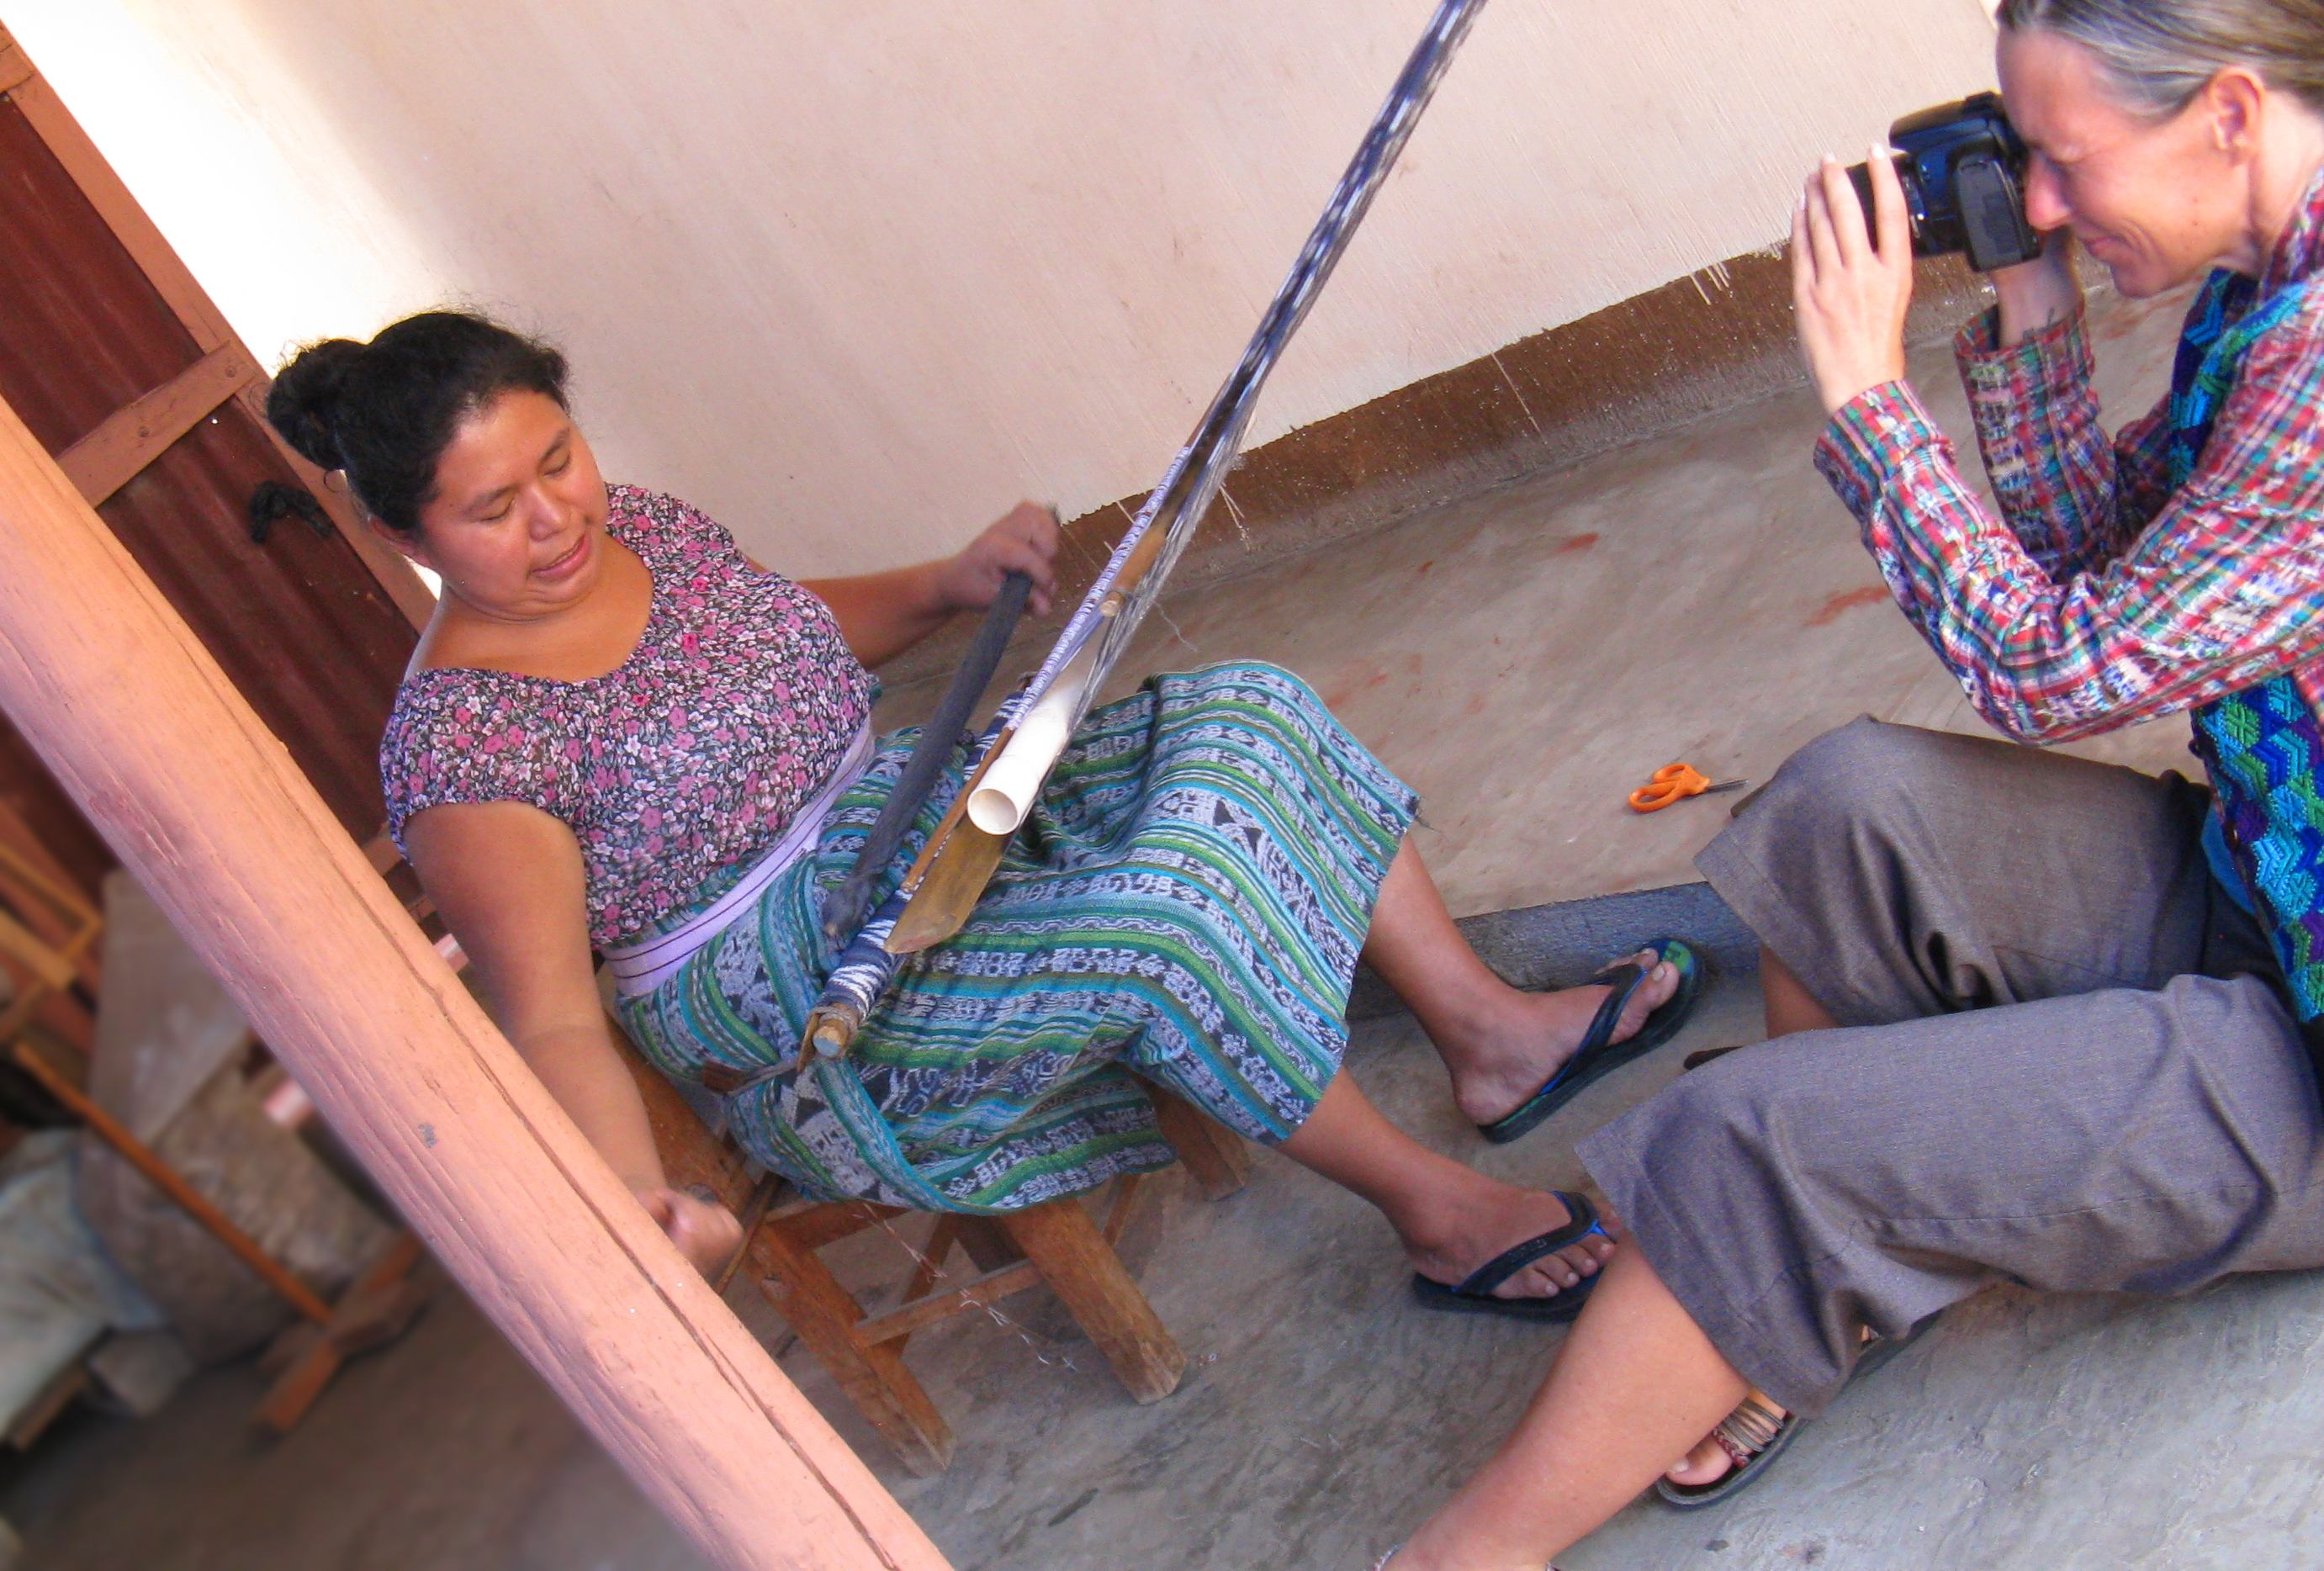 Mayan Master Backstrap Loom Weaver Isabel Pérez Mendoza at her loom and Emma Goude Documentary film maker shooting photos